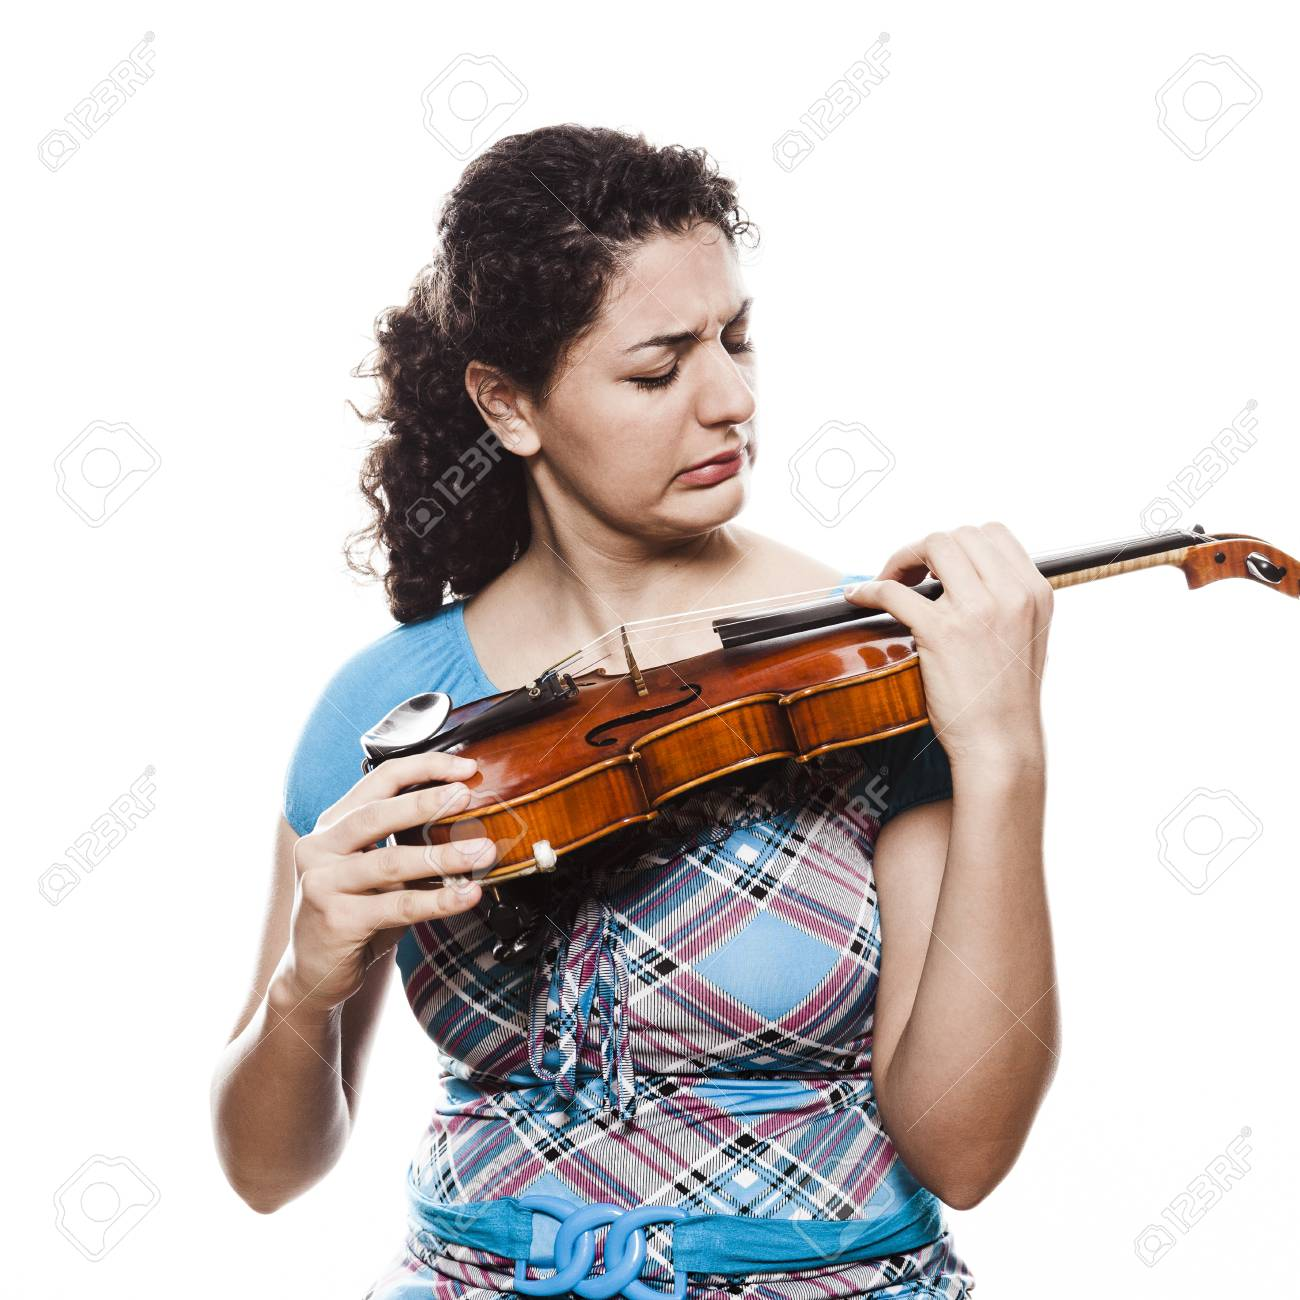 Emotional young violinist playing music